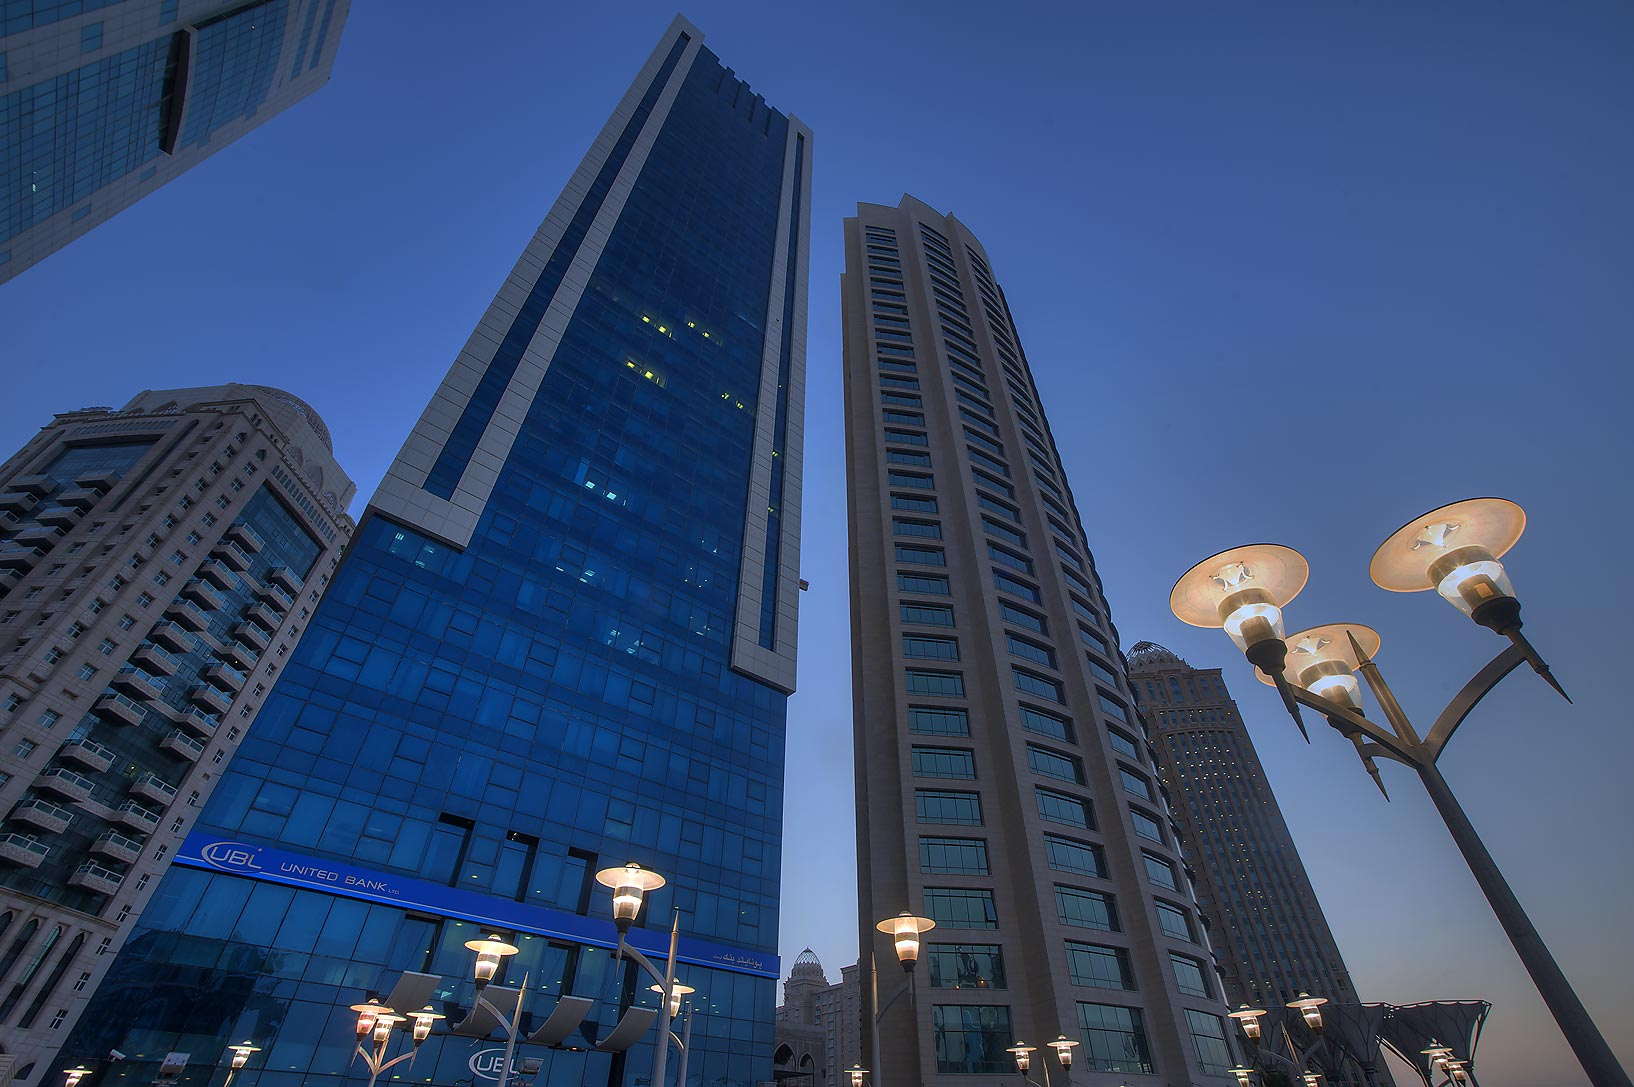 Milaha Tower on Conference Centre St. in West Bay. Doha, Qatar